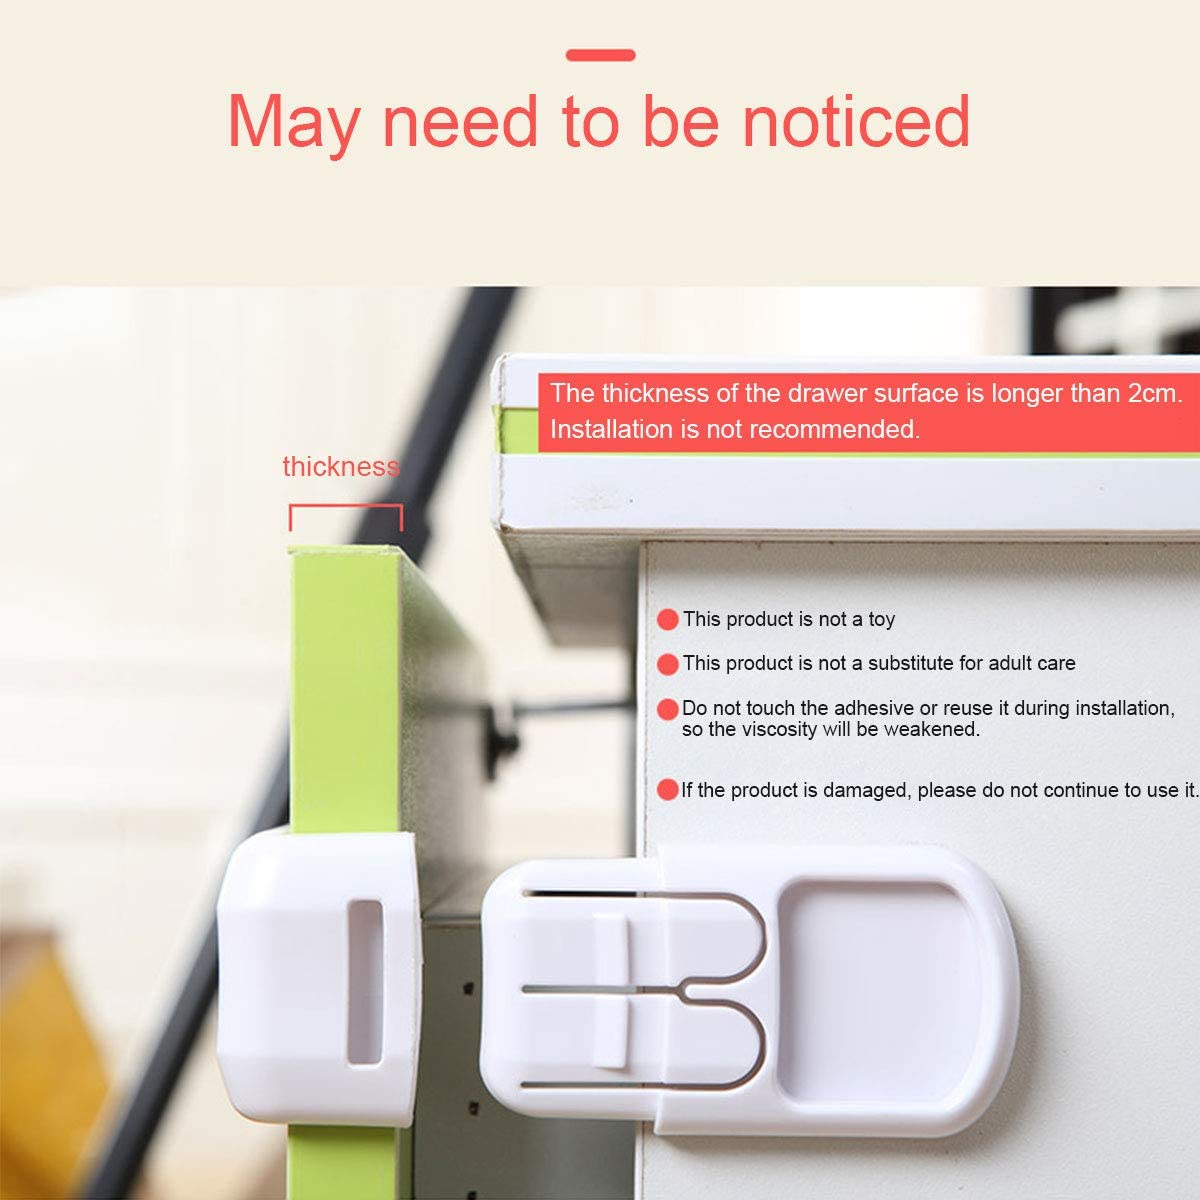 refrigerators No Drilling Need Fit for Drawers Wardrobes. Double Button Ulable 10 Pack Baby Safety Lock Drawer Lock